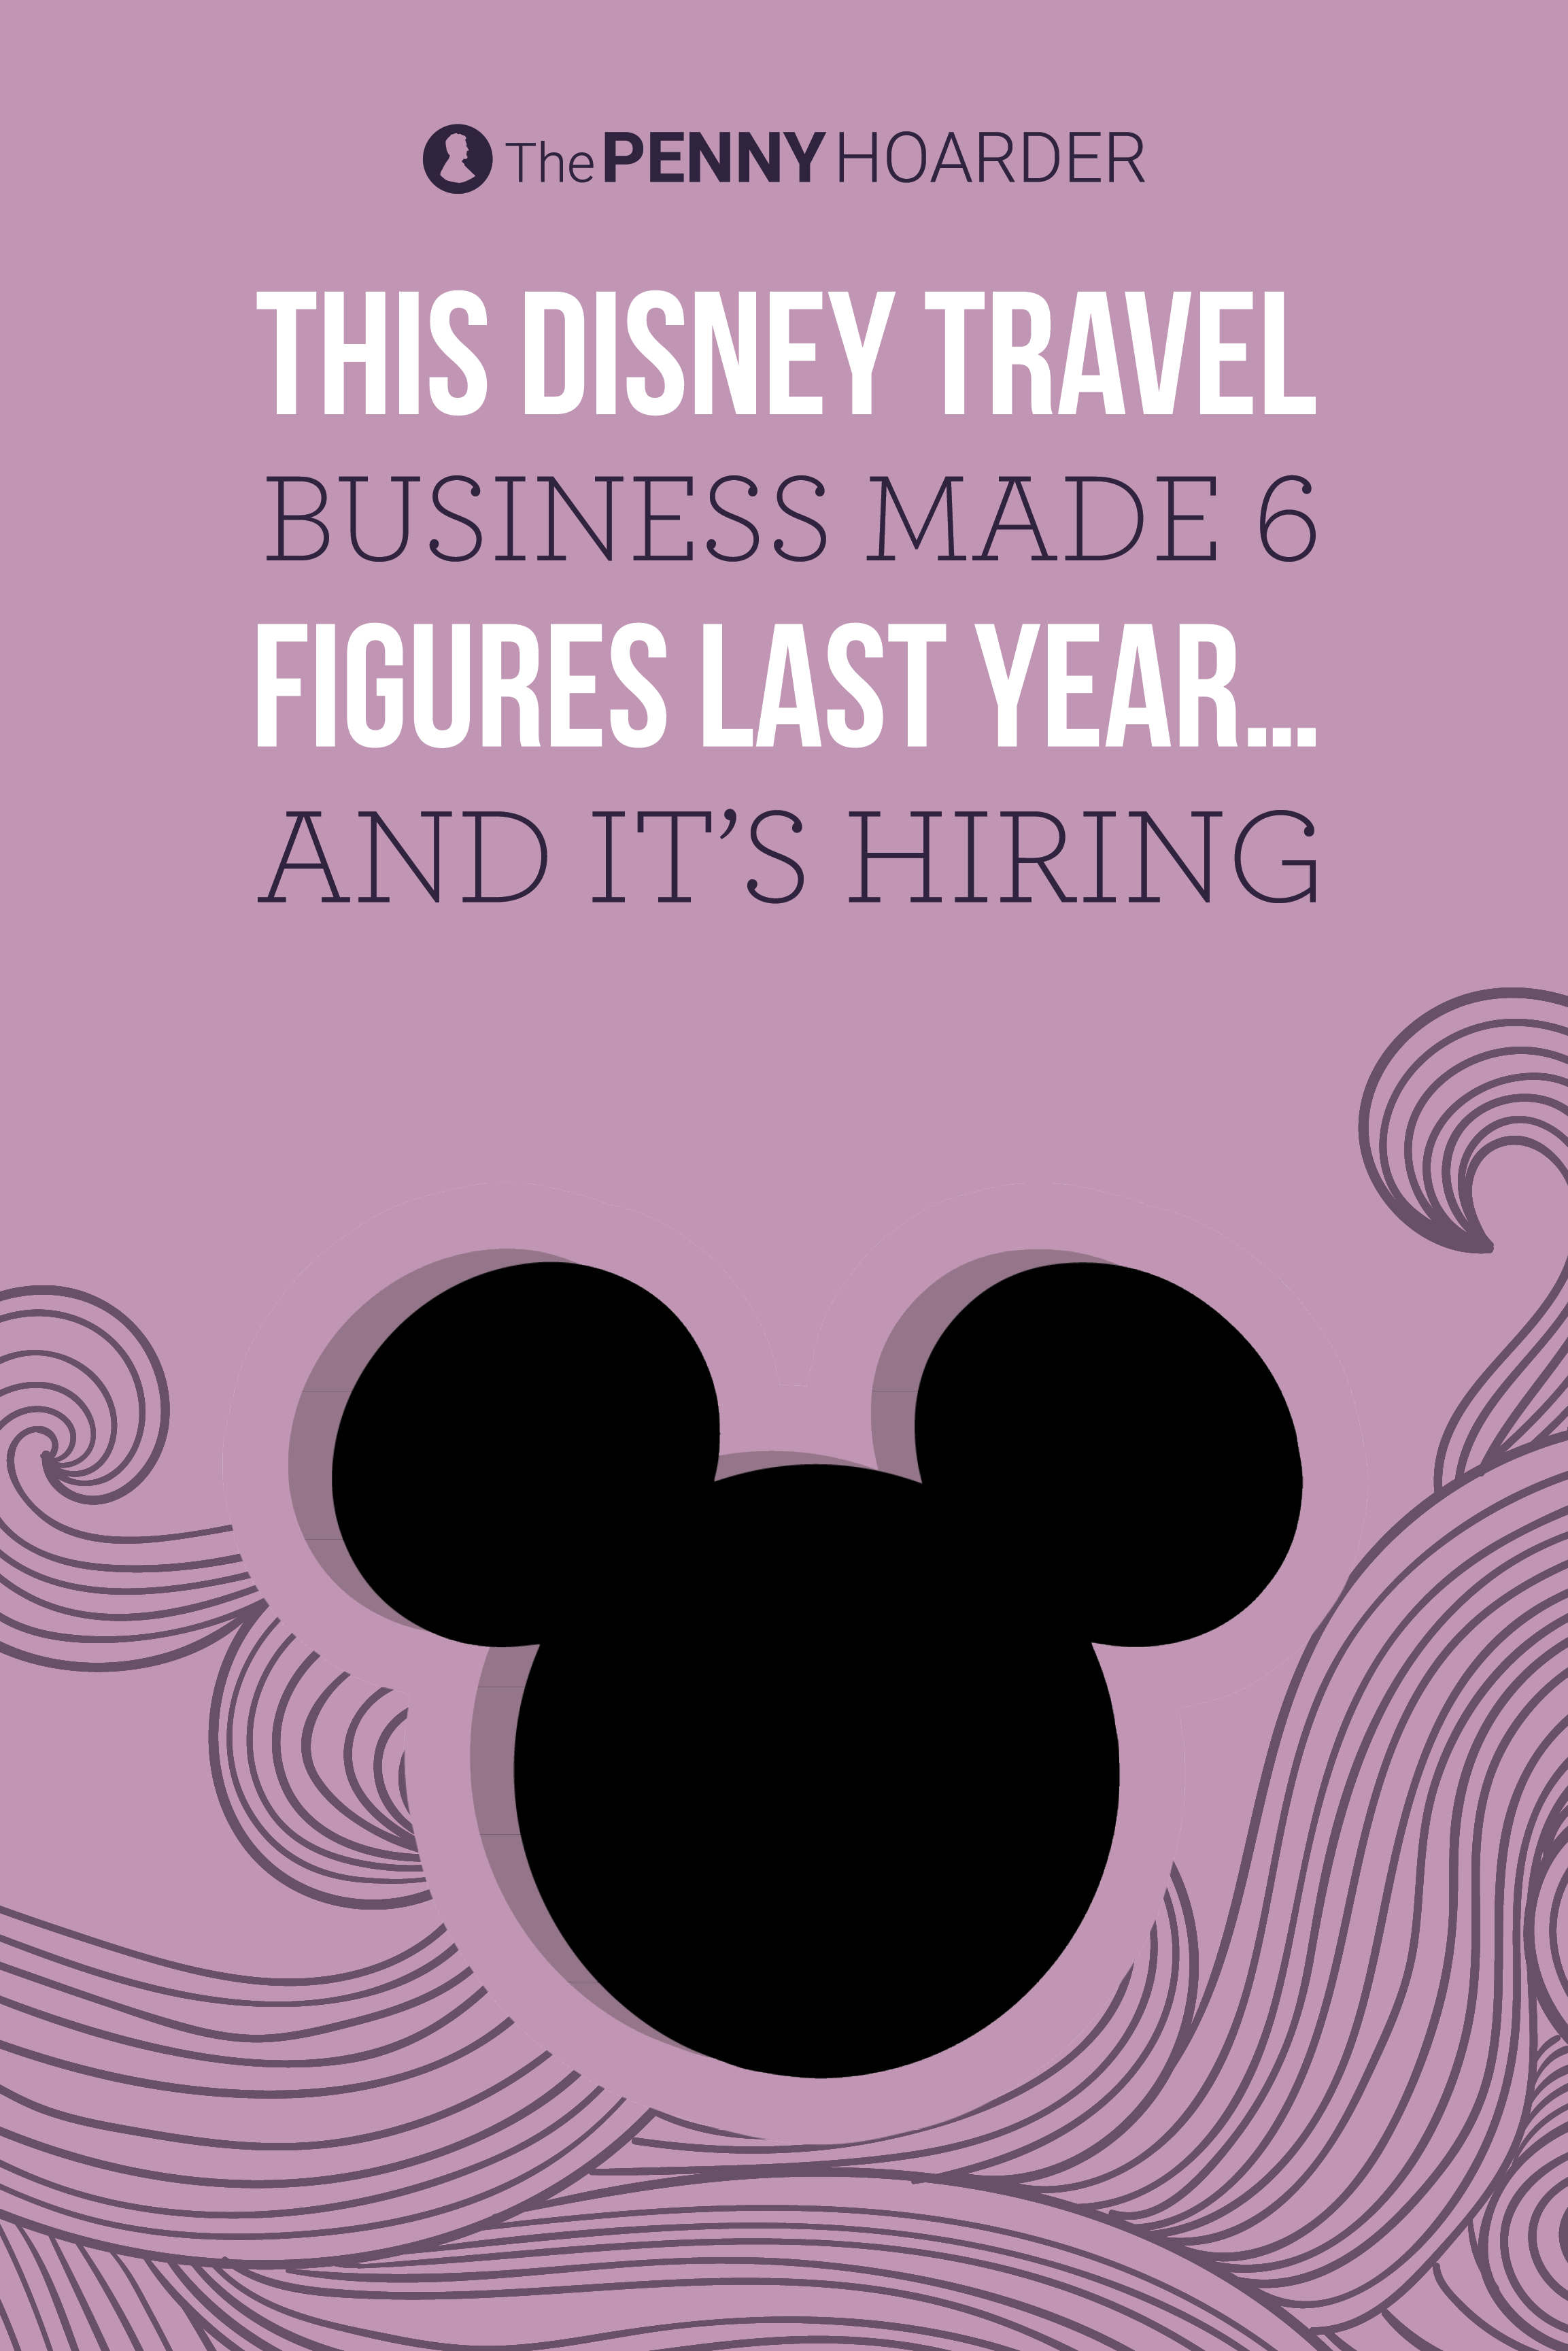 Lo Ng For A Way To Make Ends Meet Kari Bonnes Used Her Knowledge Of Disney Theme Parks To Create A Six Figure Business Now Shes Hiring Other Disney